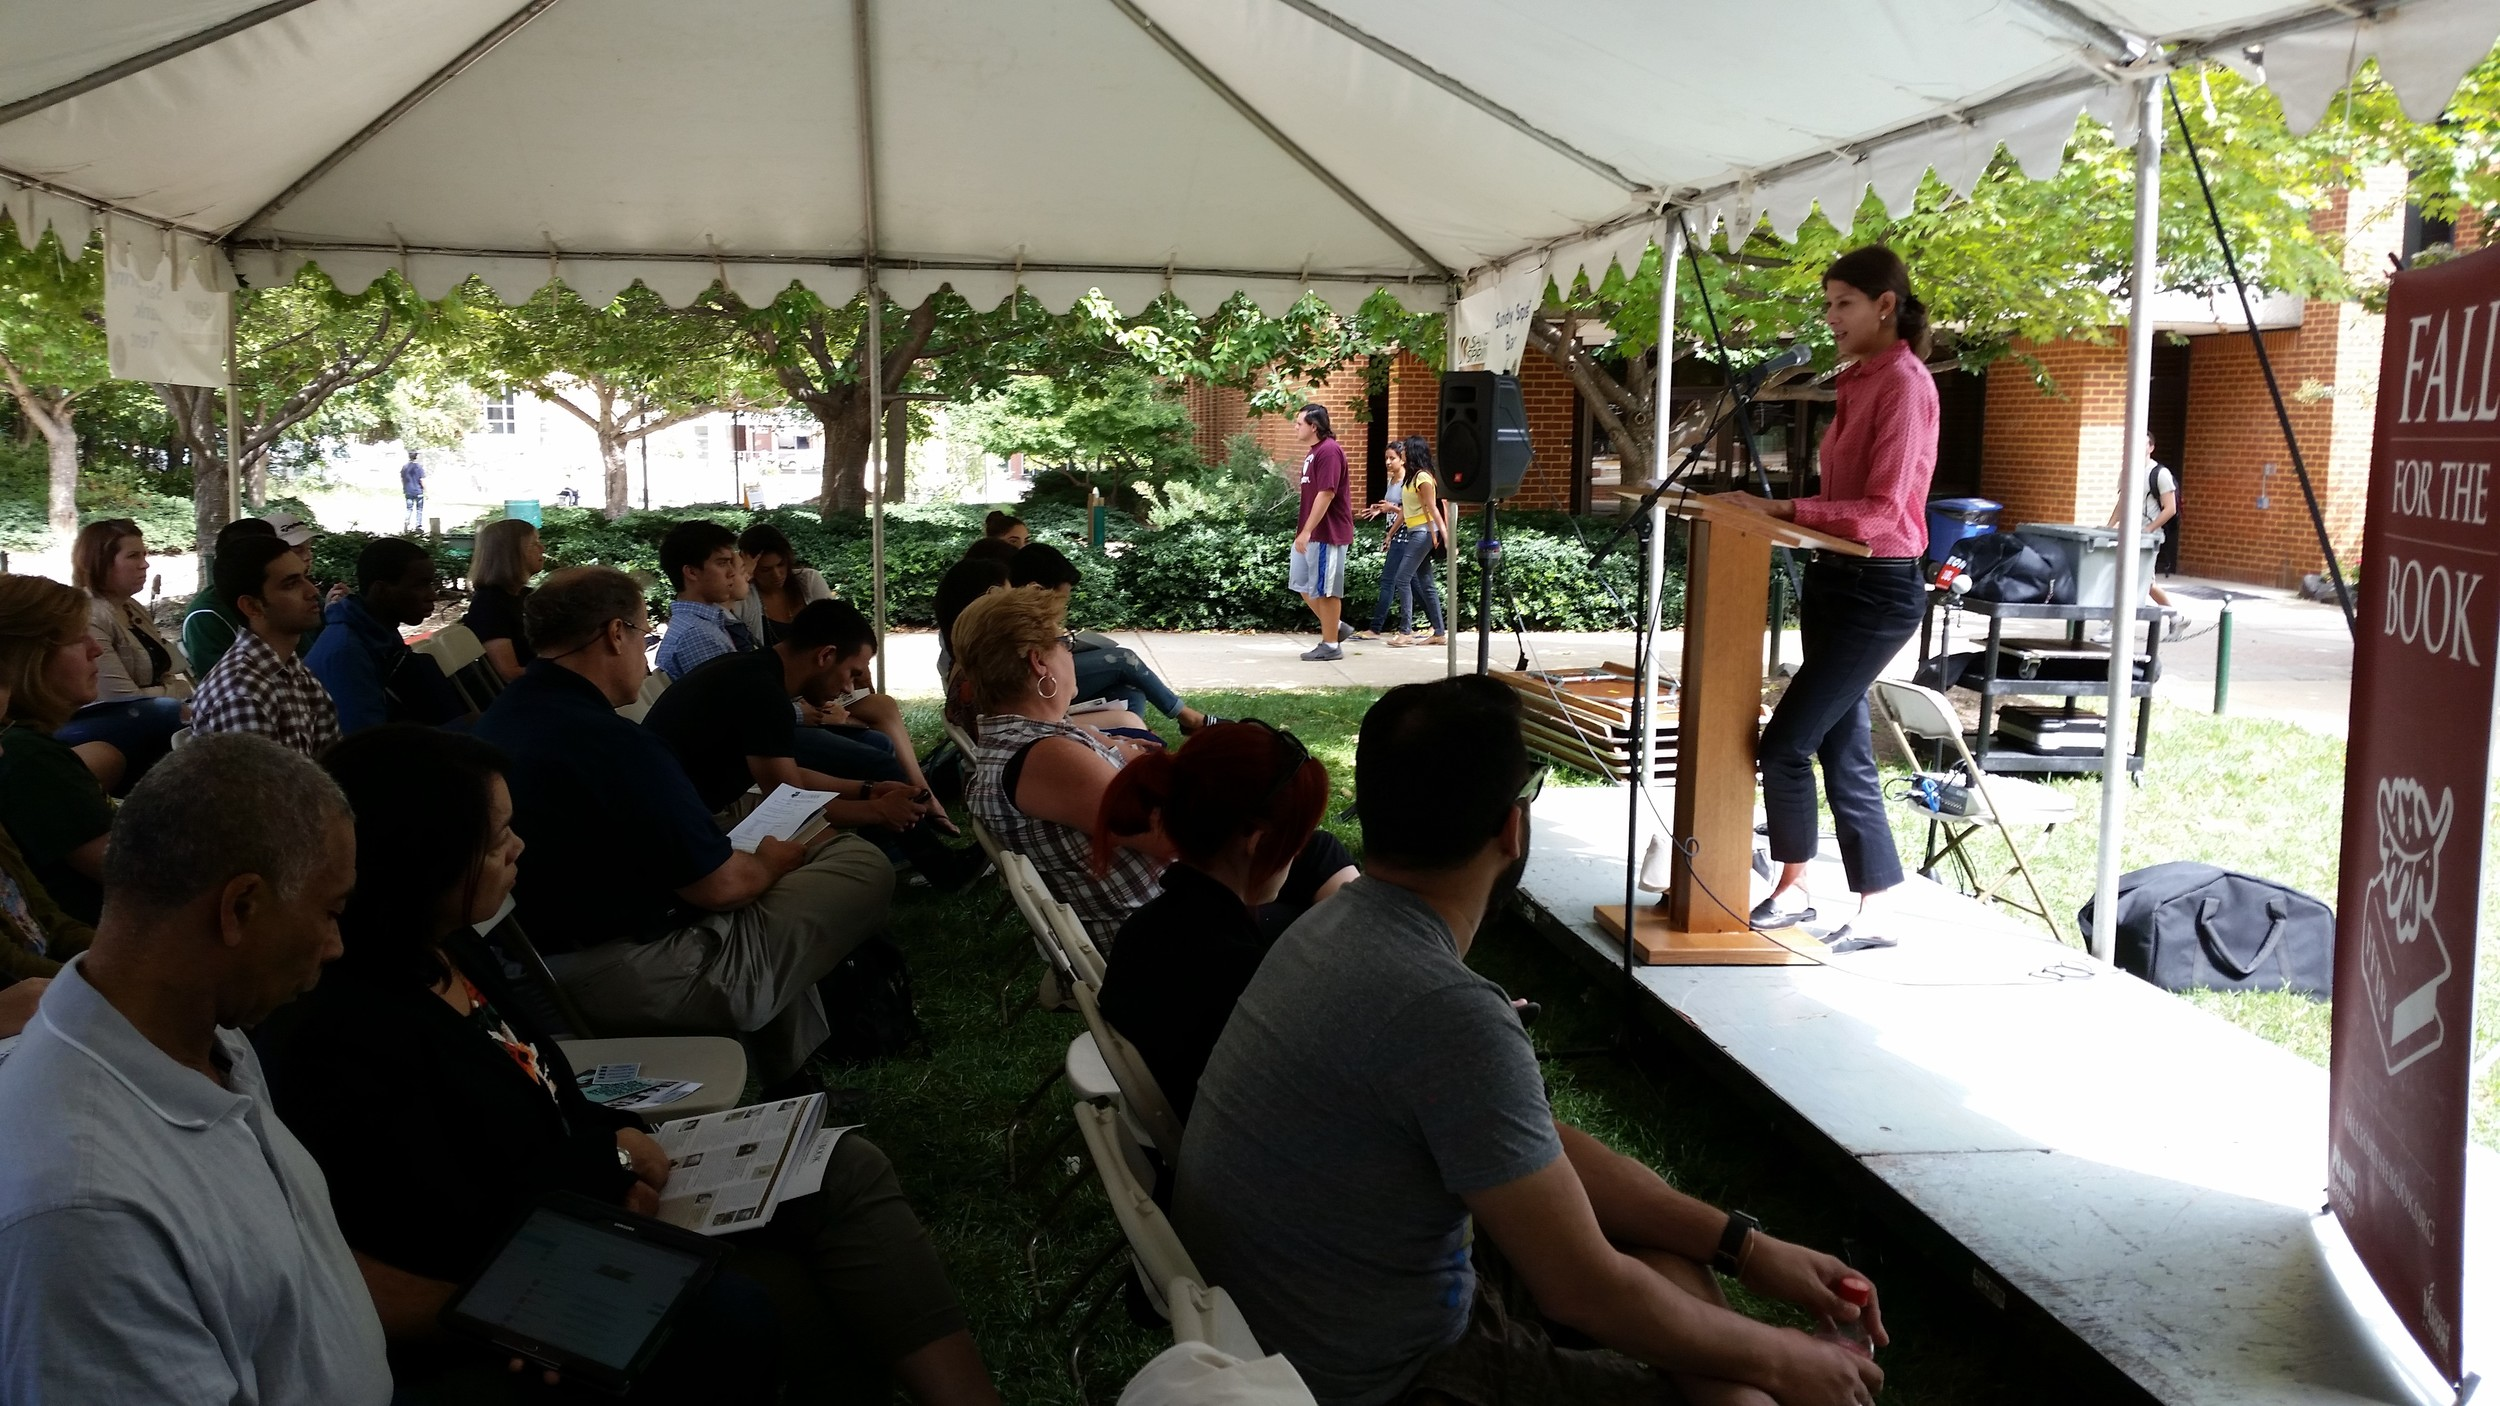 Decent crowd at Fall for the Book 2014